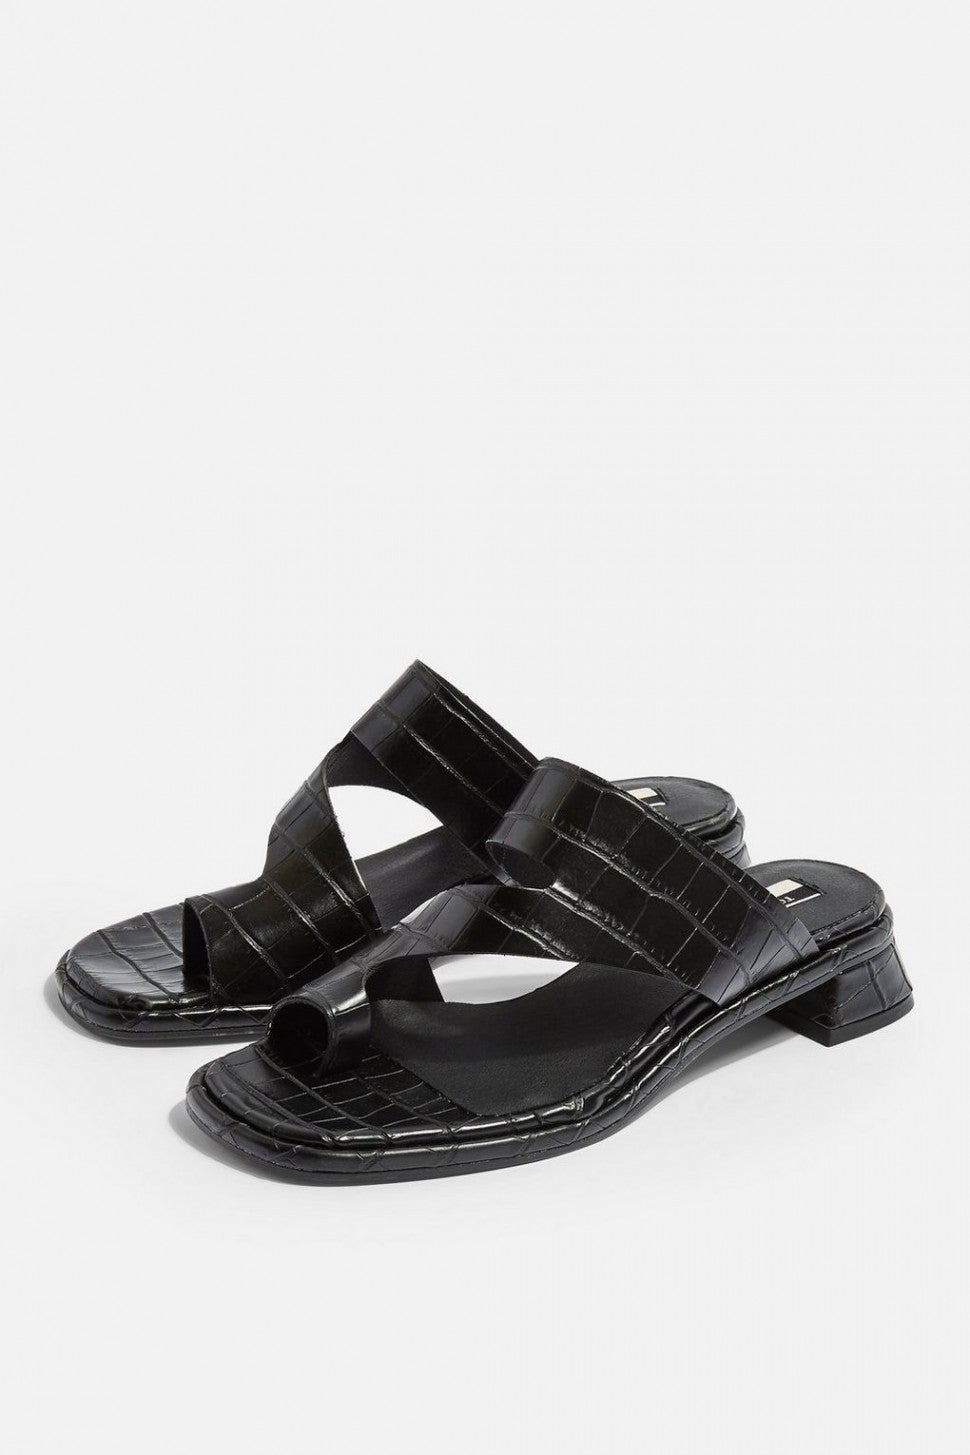 Topshop black croc toe loop sandals